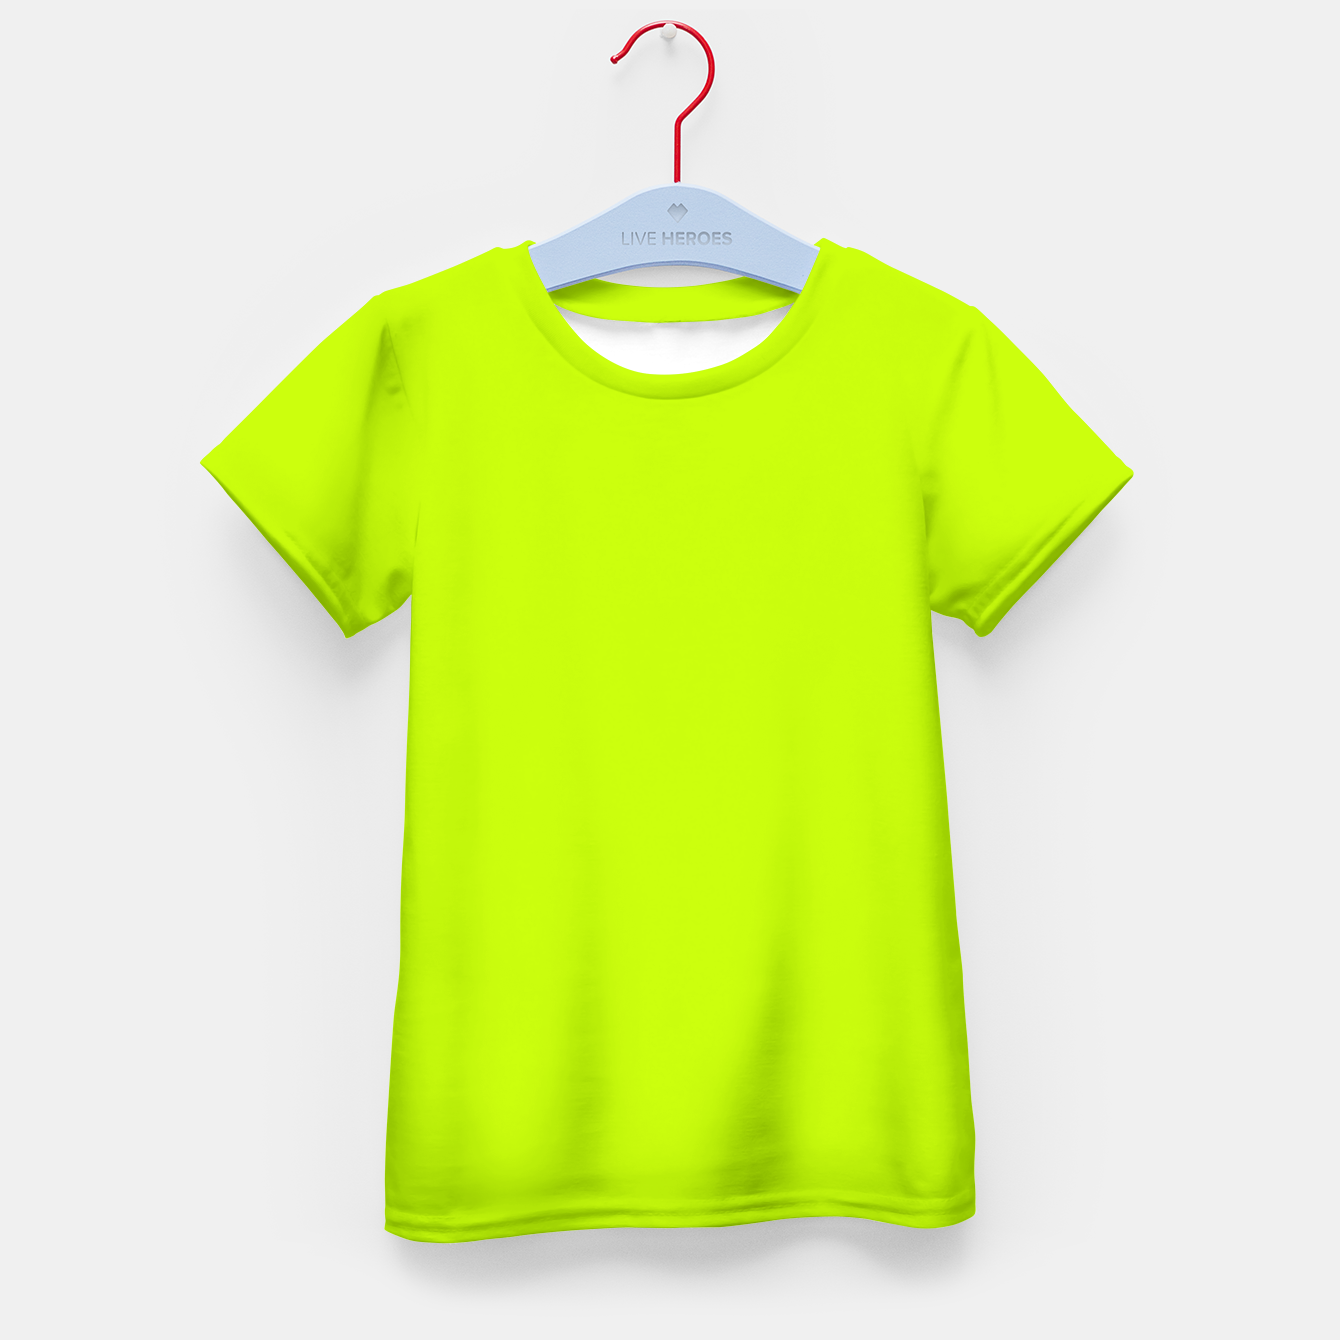 Foto Bitter Lime Neon Green Yellow Solid Color Kid's t-shirt - Live Heroes